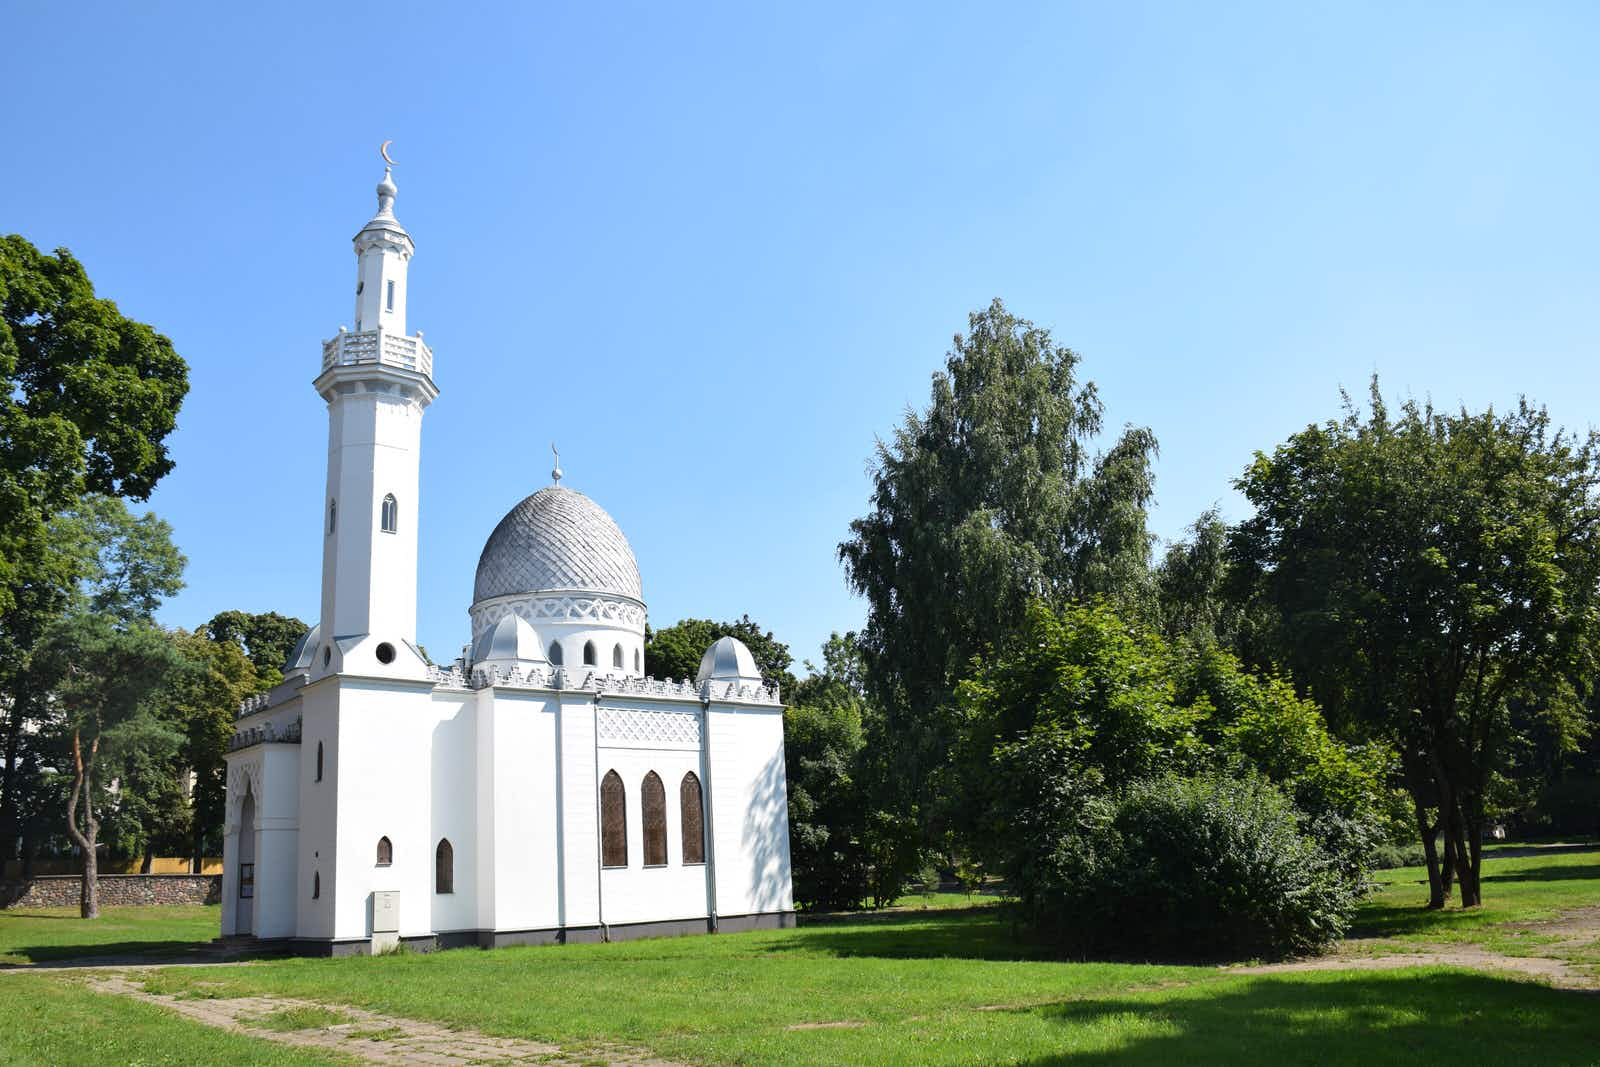 Uncovering Lithuania's little-known Muslim heritage